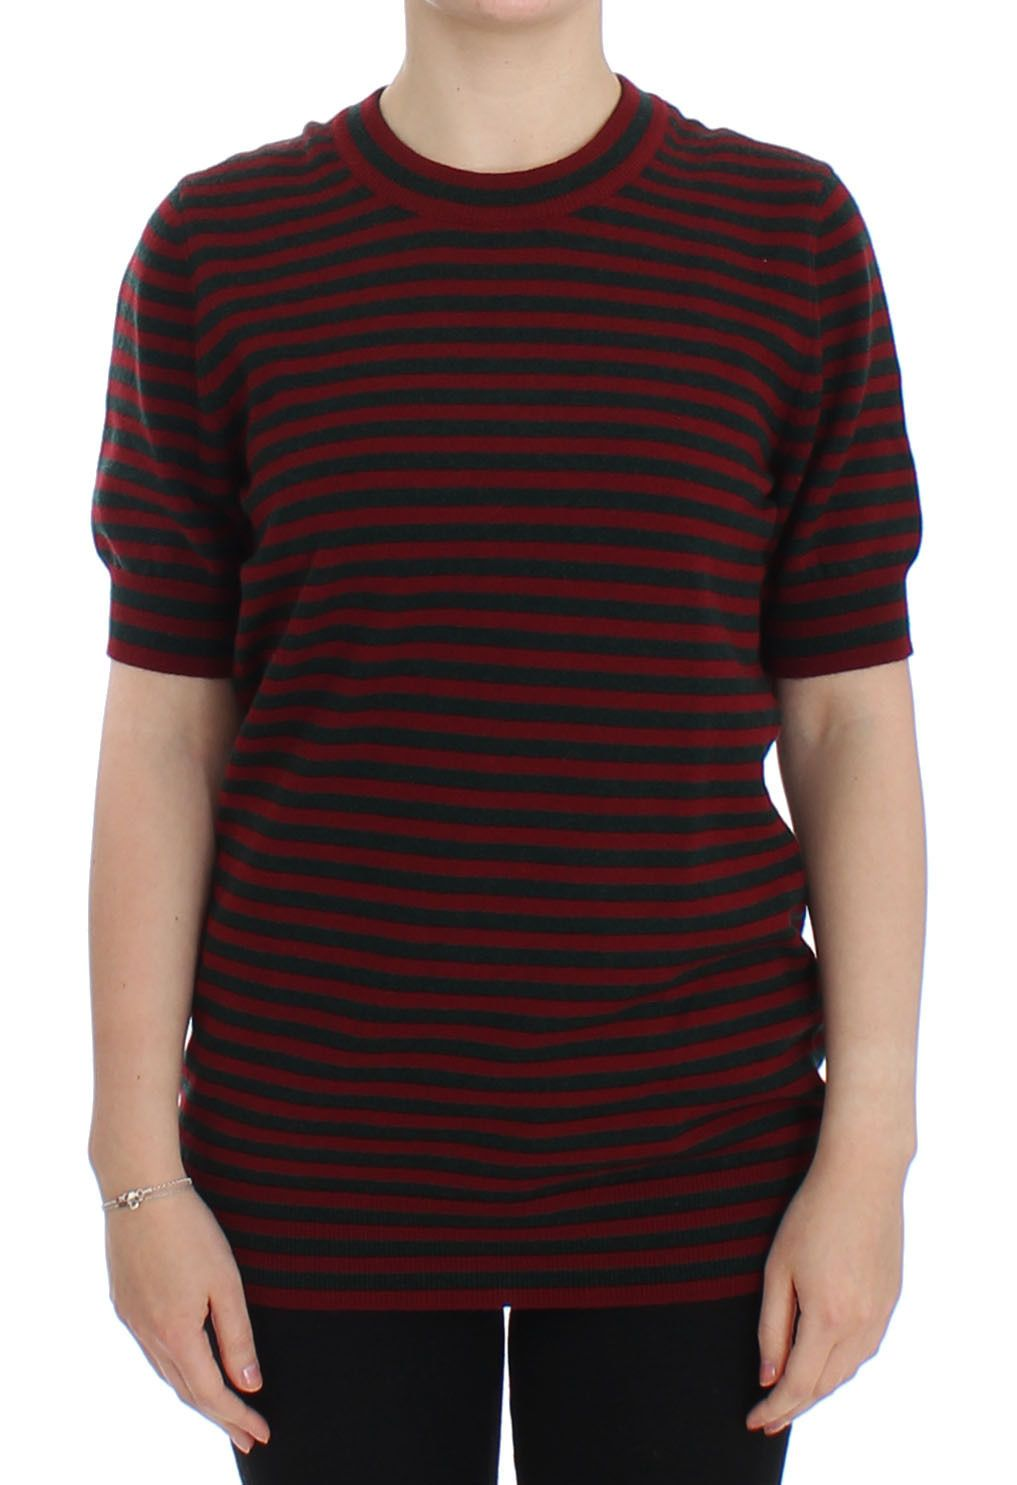 Dolce & Gabbana Women's Cashmere SS Sweater Red SIG13354 - IT36 | S